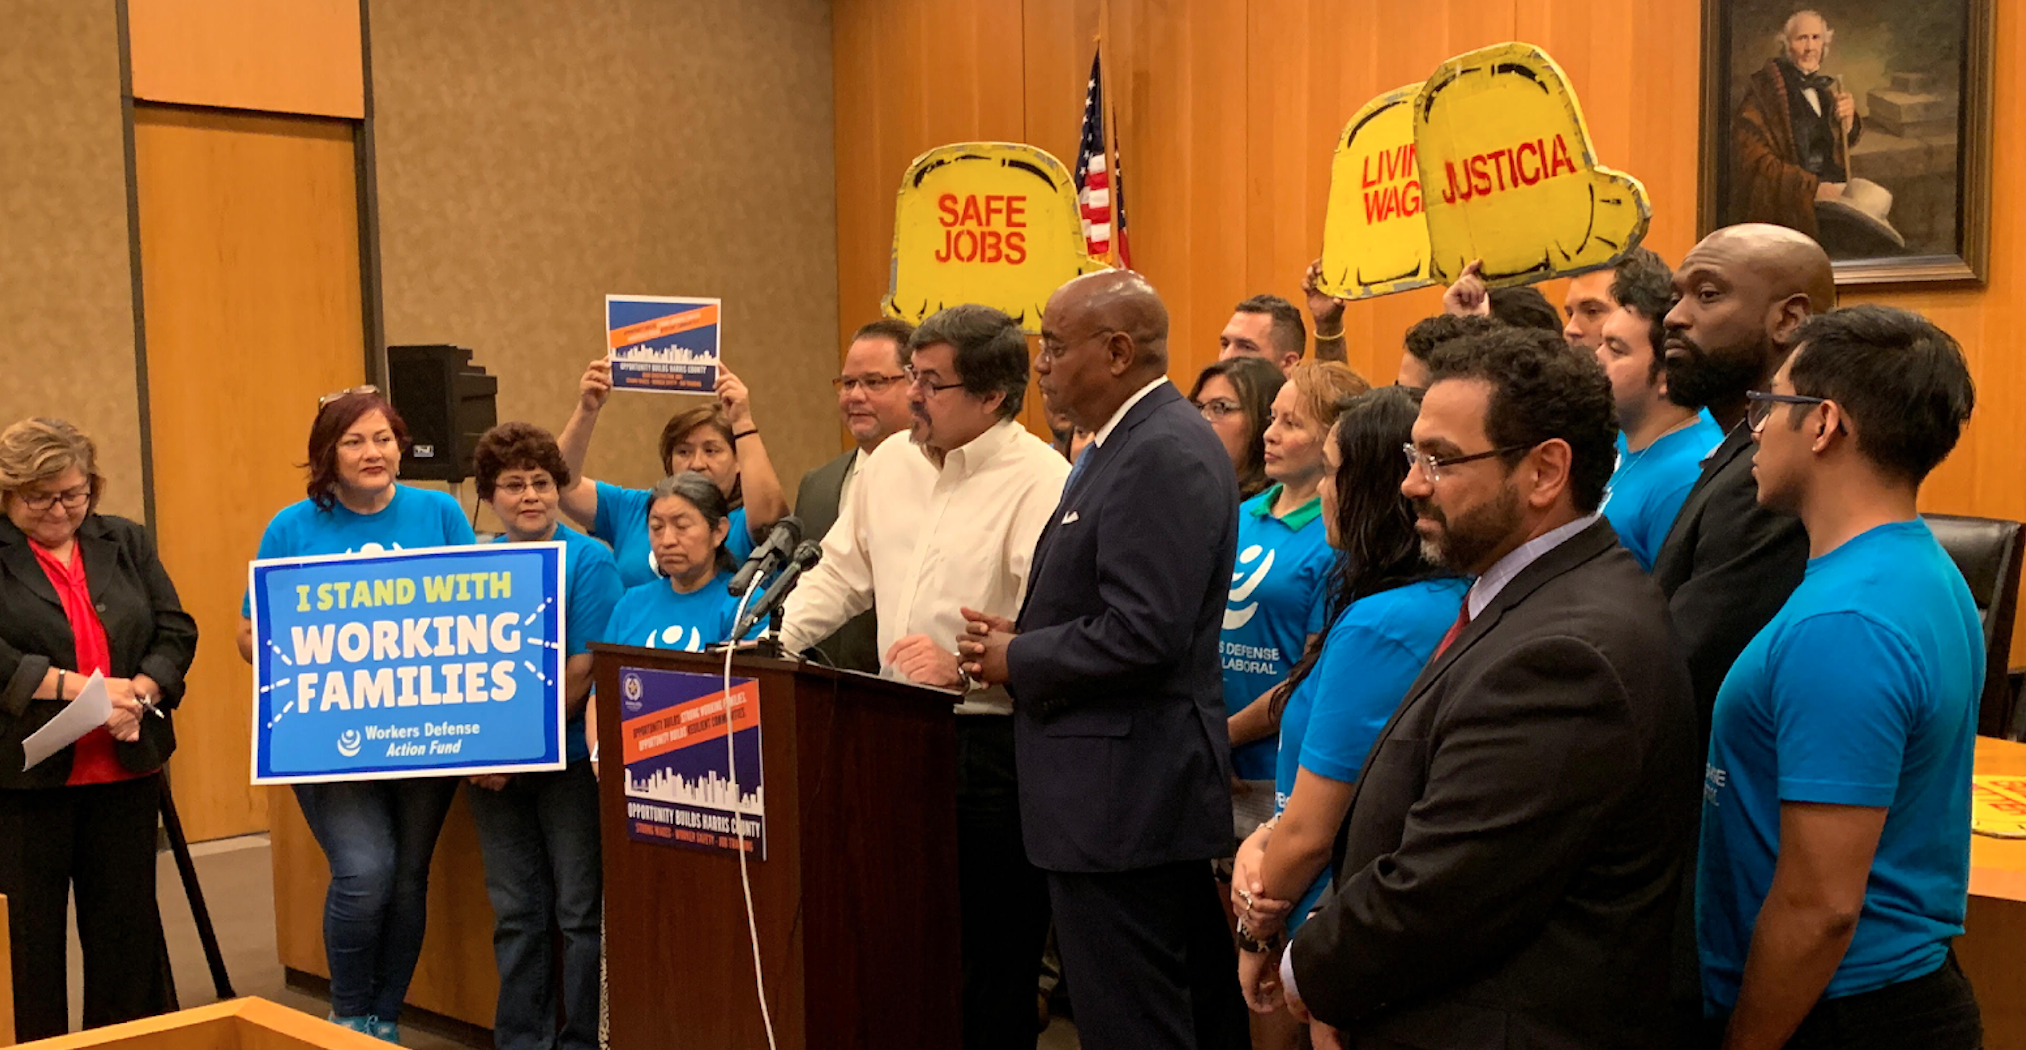 Labor and community organizers with the Build Houston Better campaign, launched after Hurricane Harvey, and  Houston Mayor Sylvester Turner announce a major legislative win to improve worker protection, wages and training access. Credit: Worker's Defense